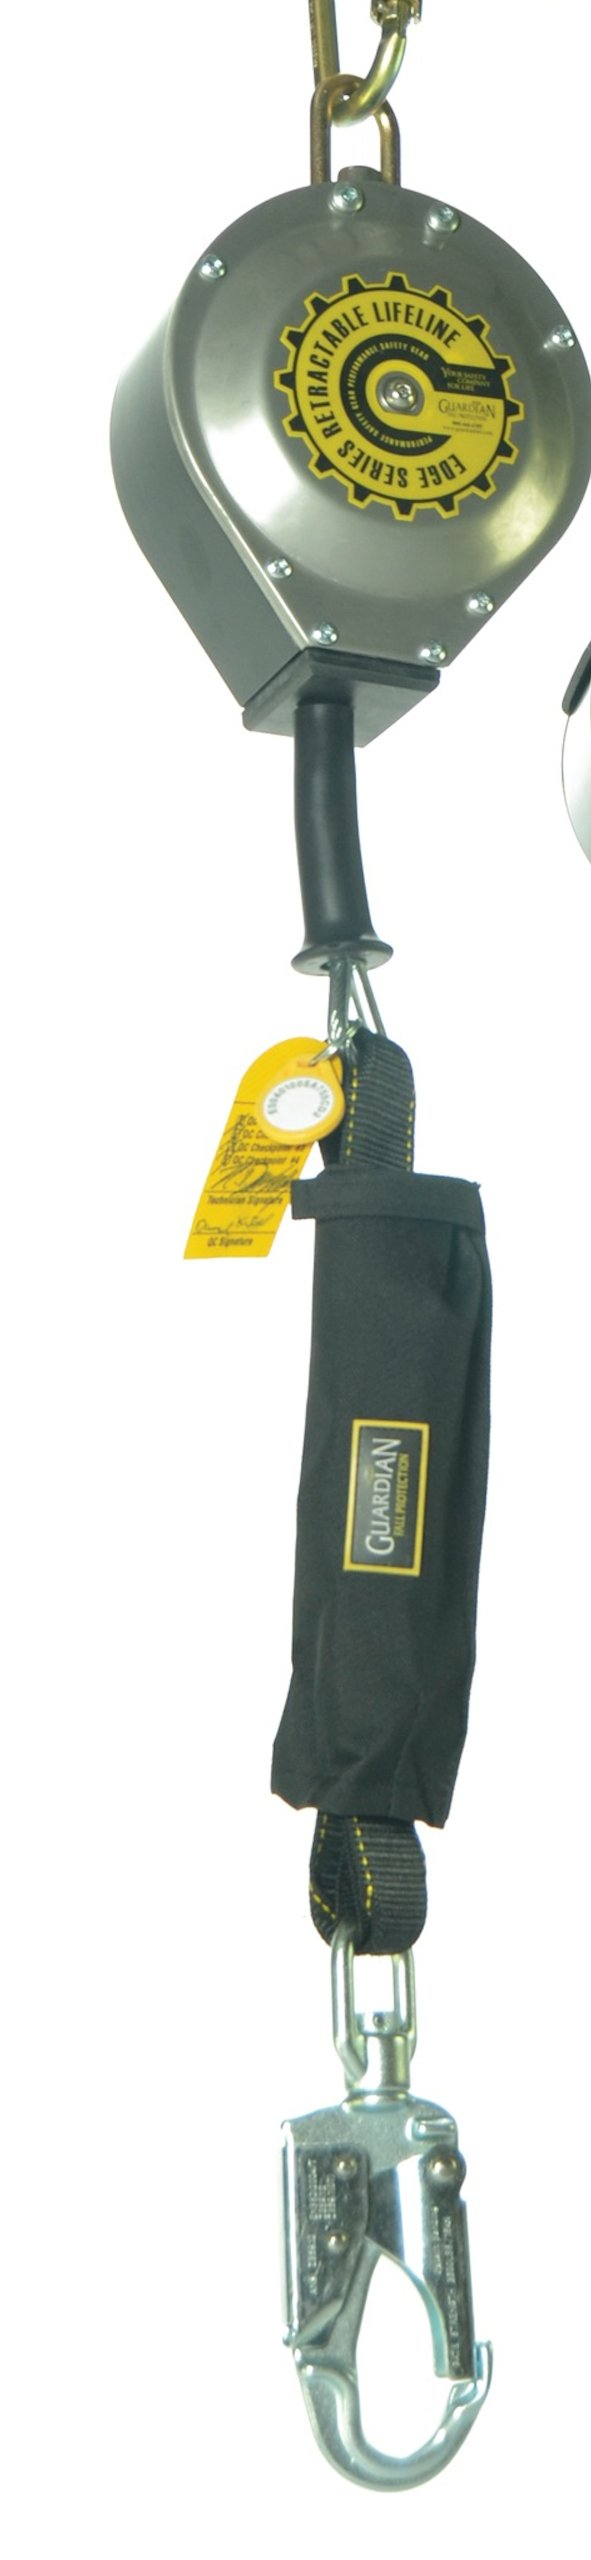 Guardian Fall Protection 10928 65-Foot Heavy Duty SRL with Heavy Duty Shock Pack and Removable Protective Cover